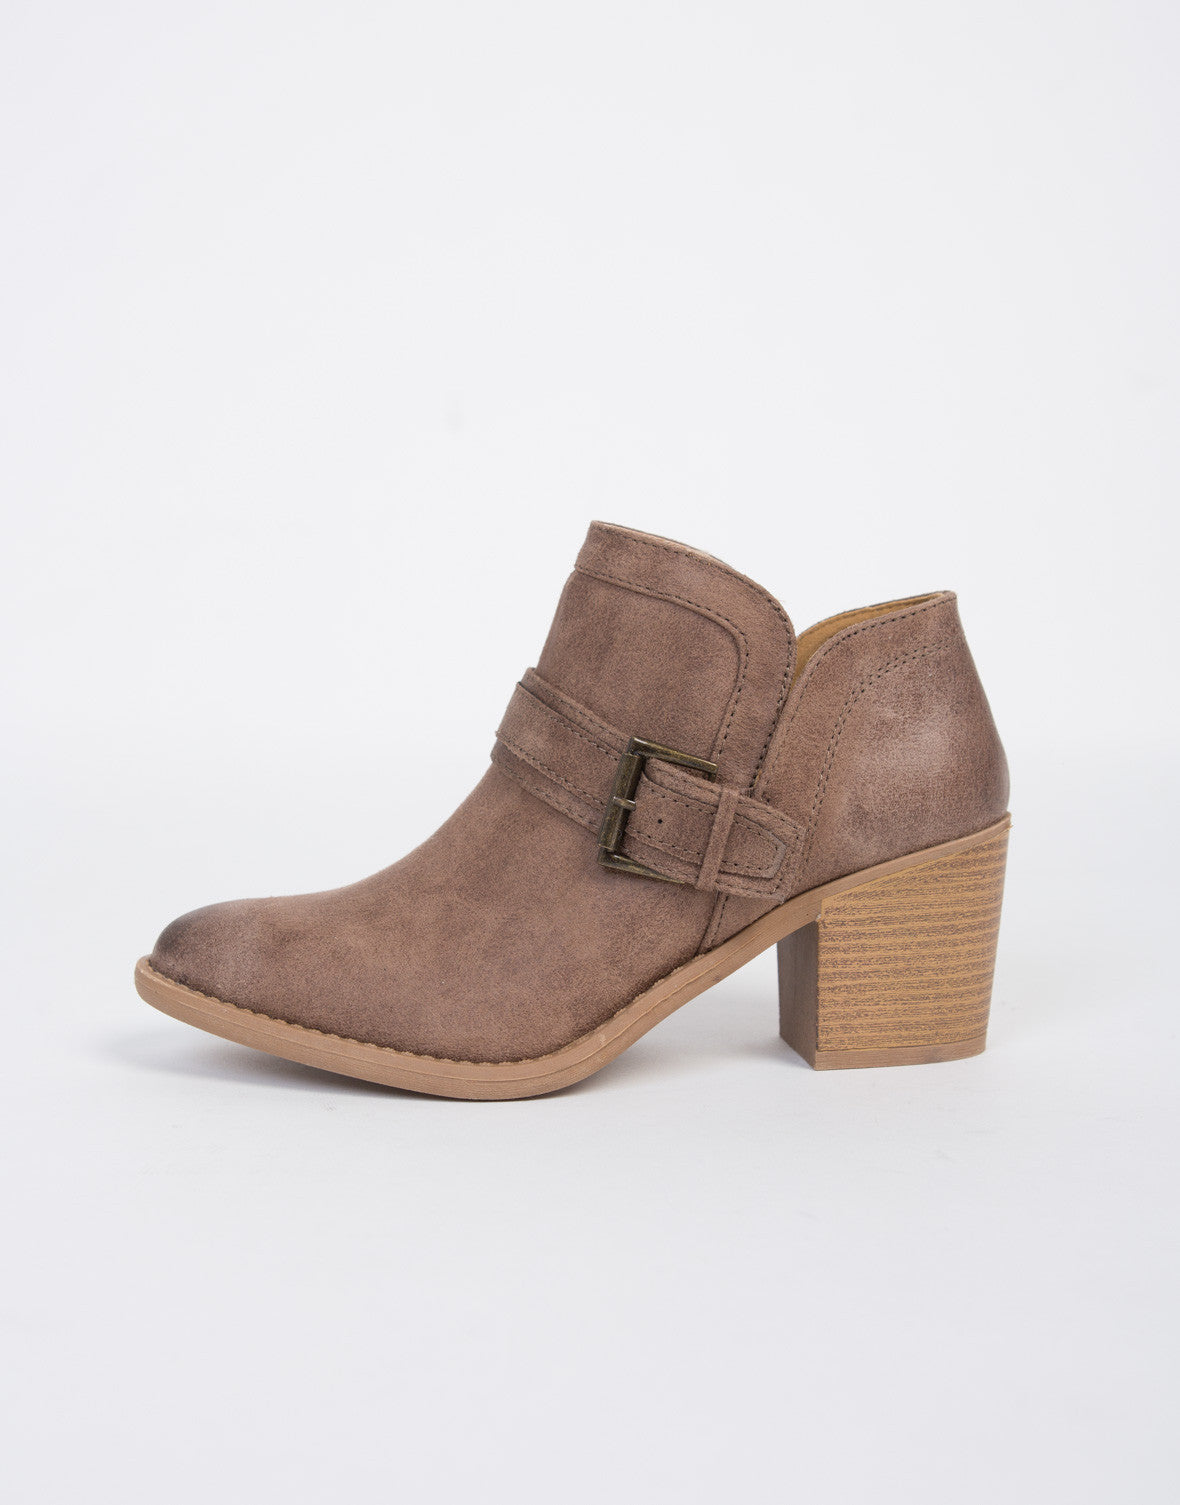 Buckled Western Booties